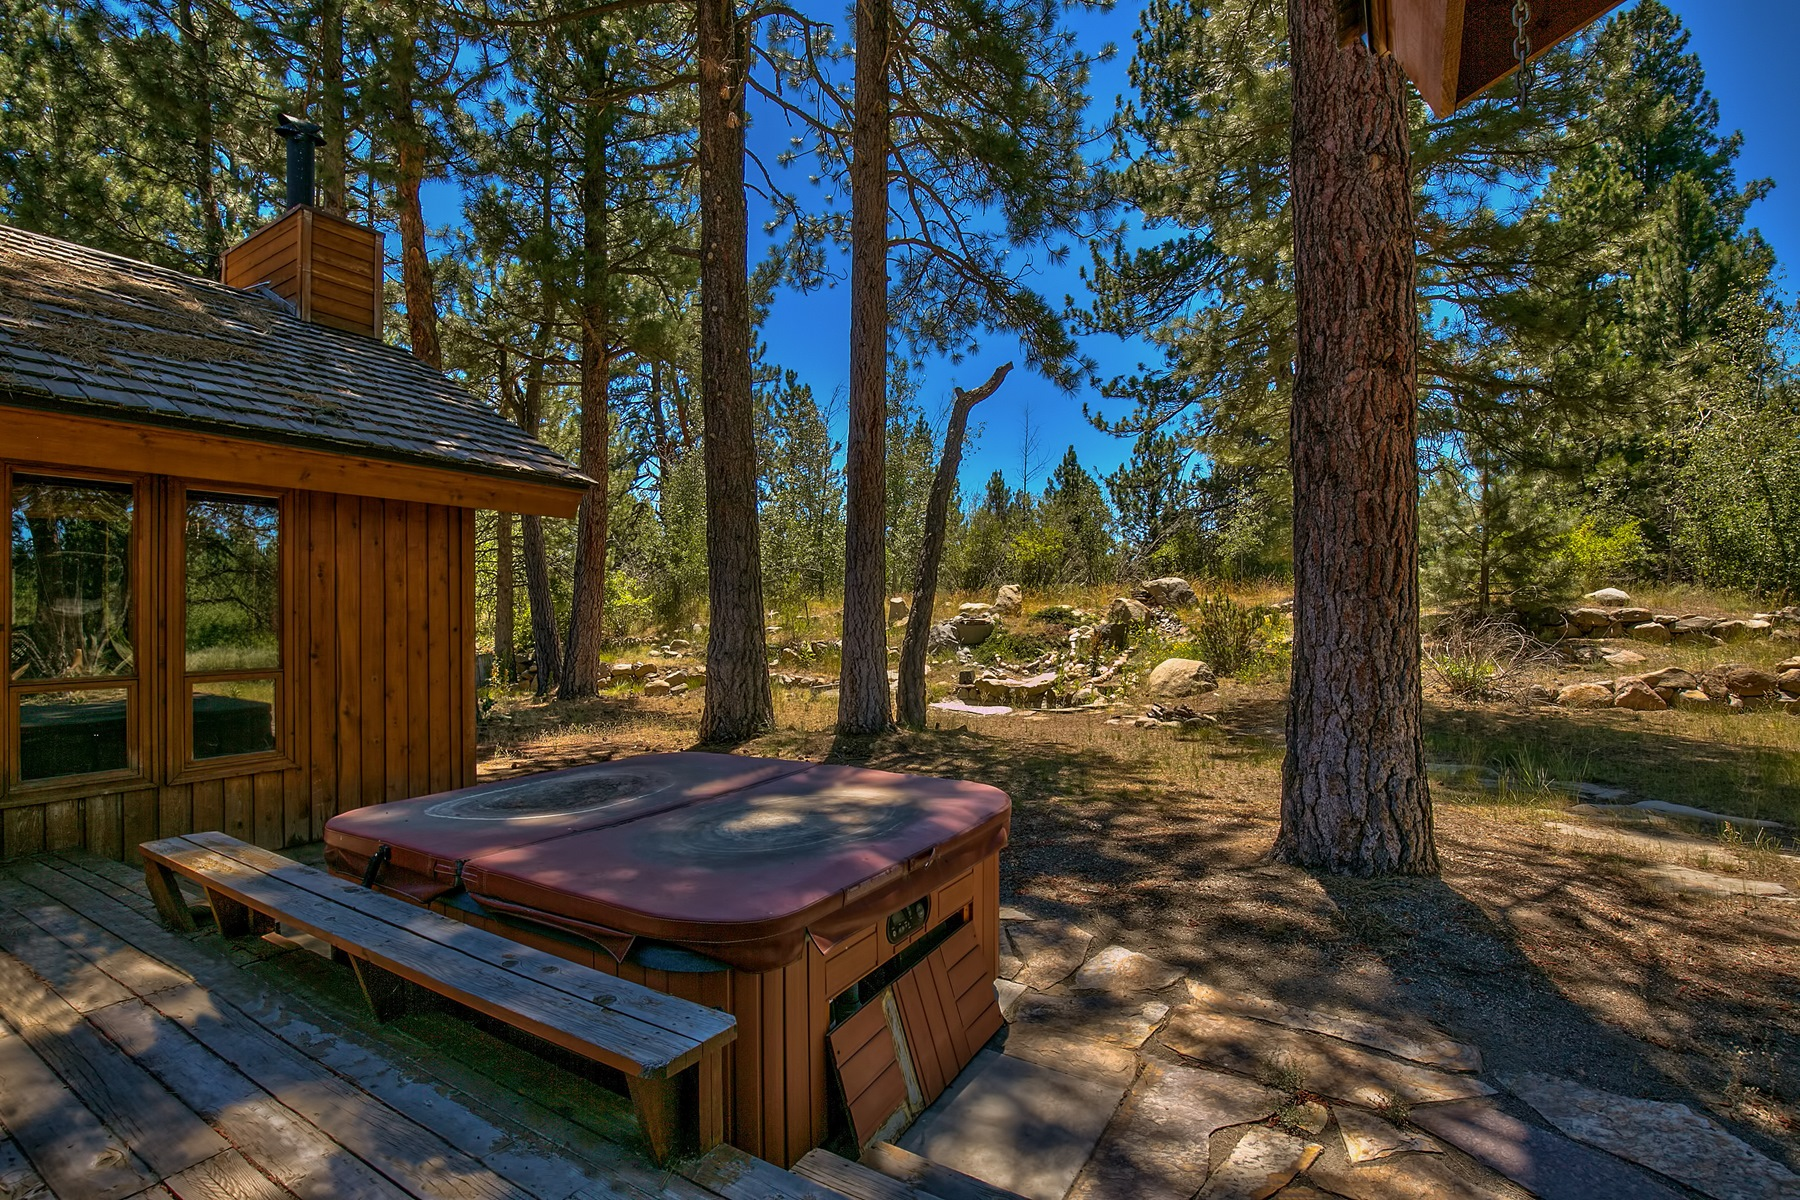 Additional photo for property listing at 11687 Moon Shadow Court 11687 Moon Shadow Ct. Truckee, California 96161 Estados Unidos